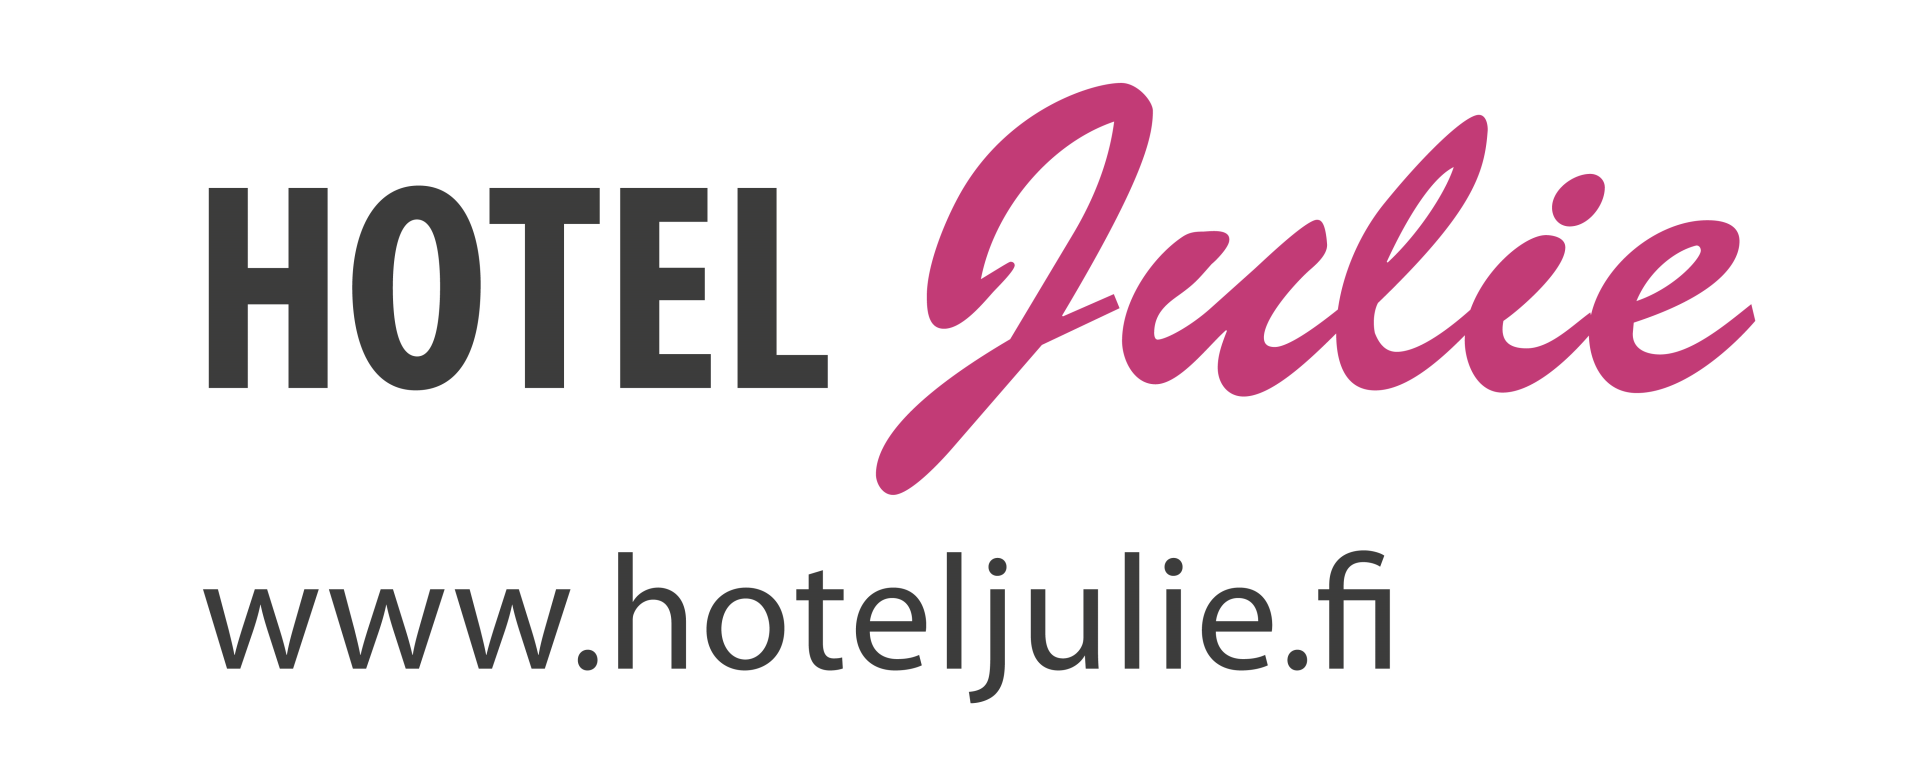 Hotel Management Software Clients - Hotel Julie